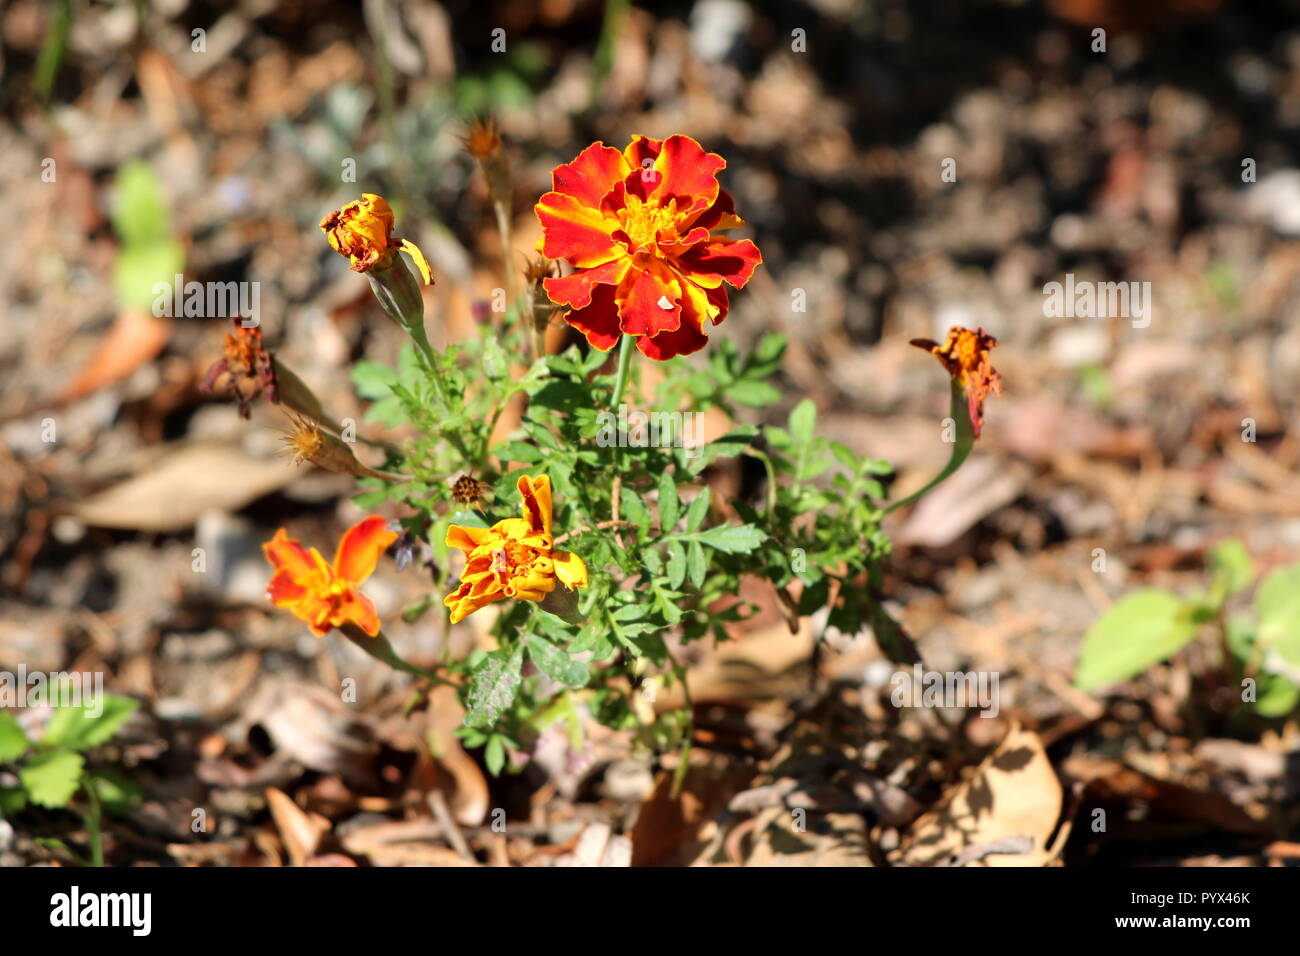 Mexican marigold or Tagetes erecta or Aztec marigold or African marigold or Big marigold single herbaceous annual plant - Stock Image